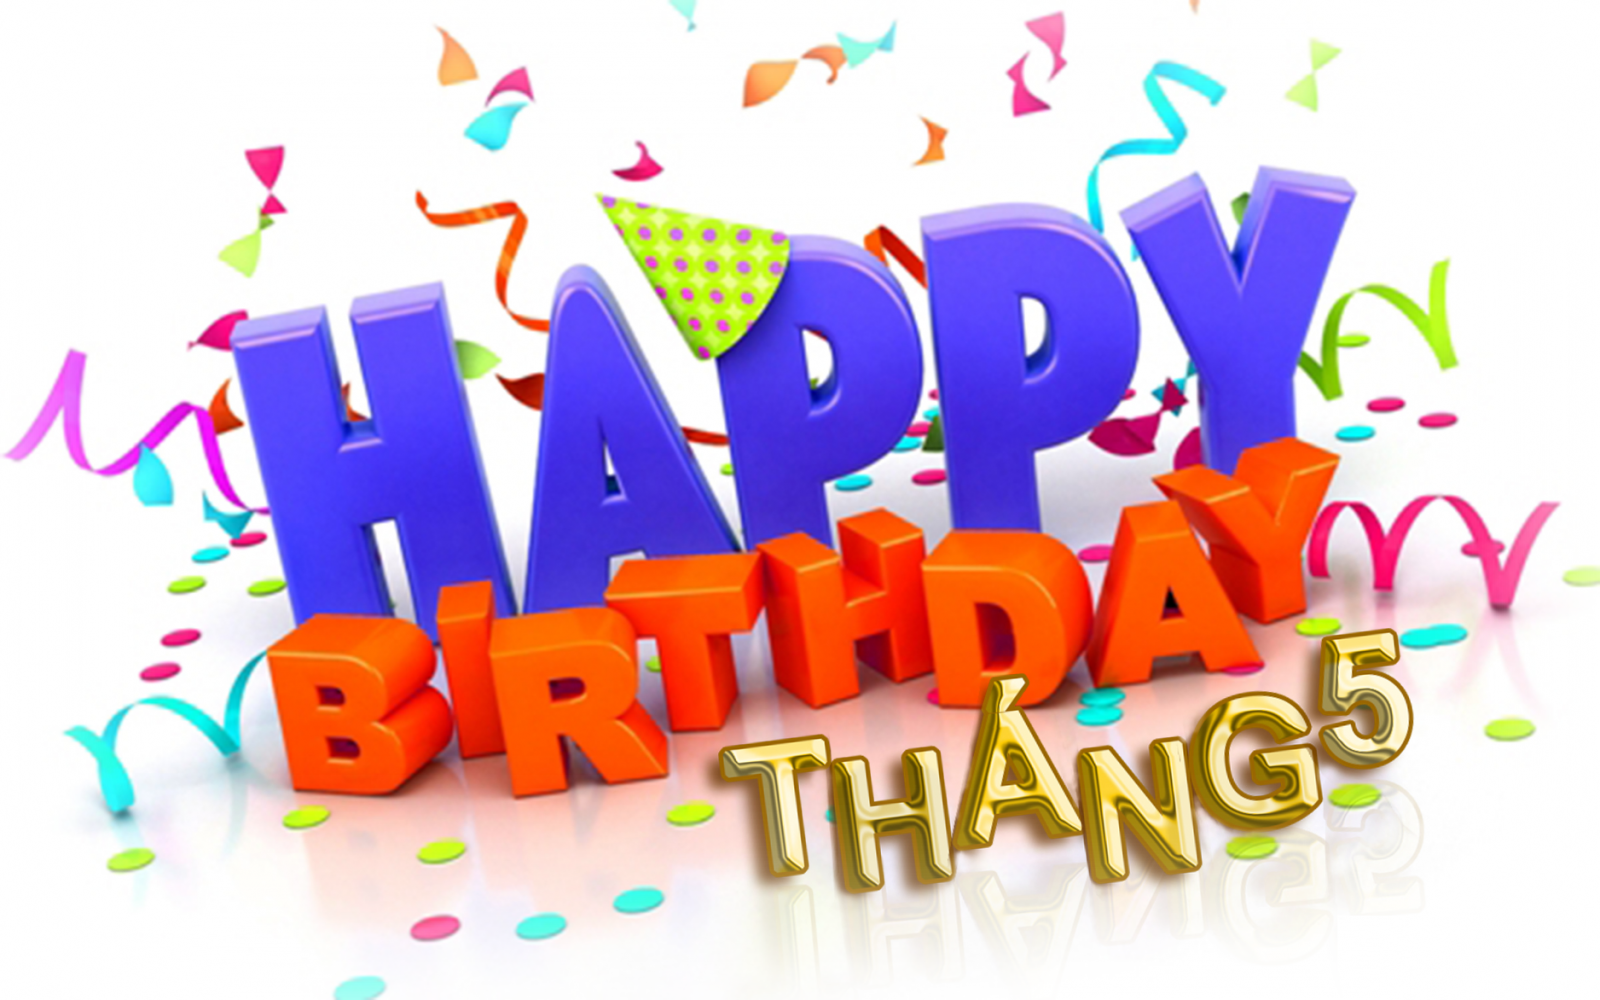 Free download. Happy birthday images png